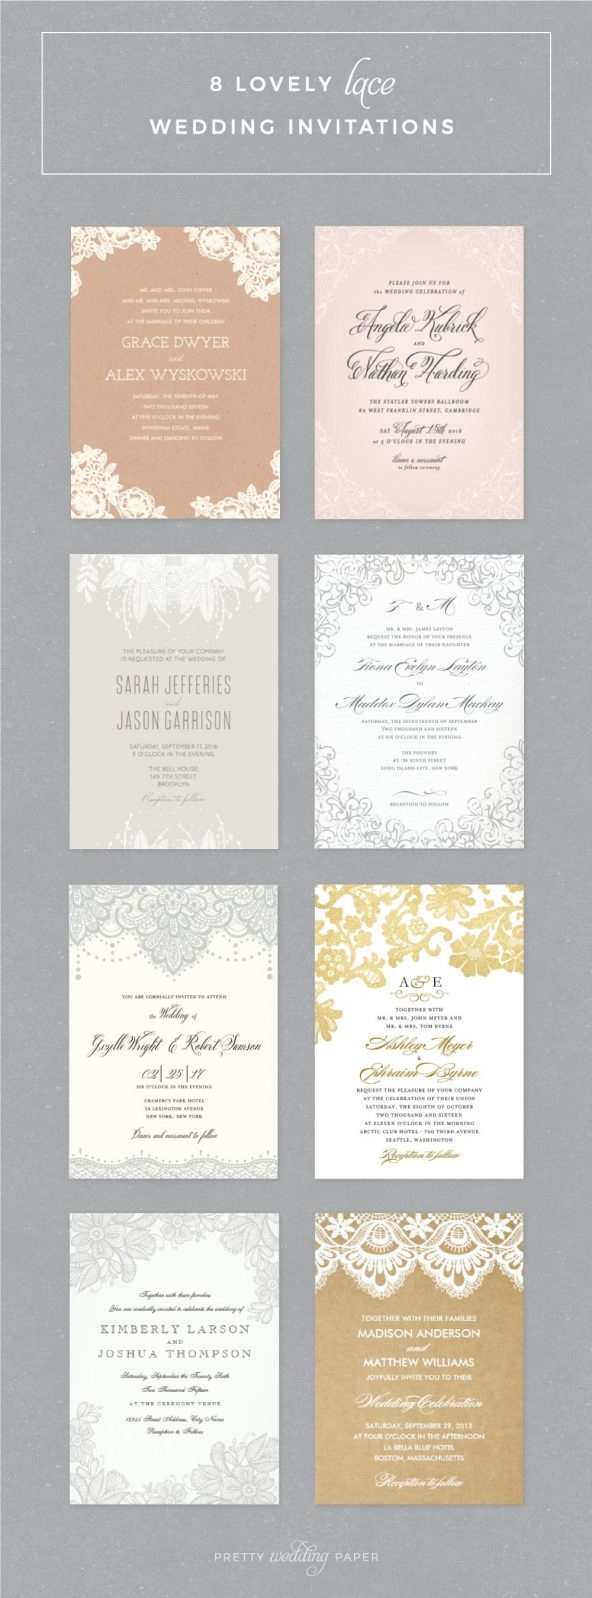 Lace Wedding Invitations: 8 lovely invites including vintage lace, rustic lace, and floral lace in kraft, grey, pink and gold.